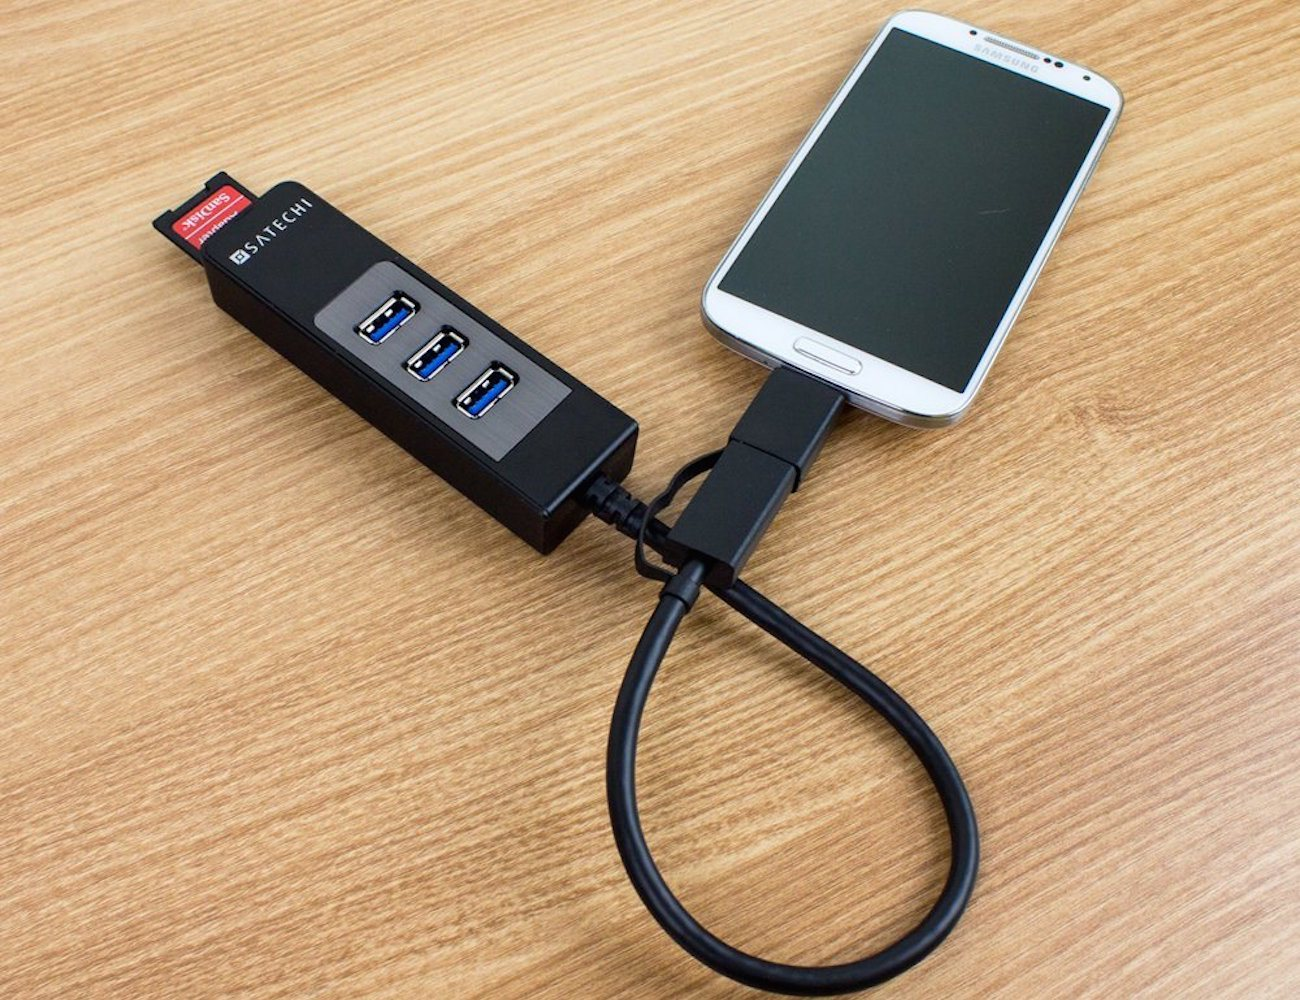 3 Port OTG USB 3.0 Hub and SD Card Reader by Satechi